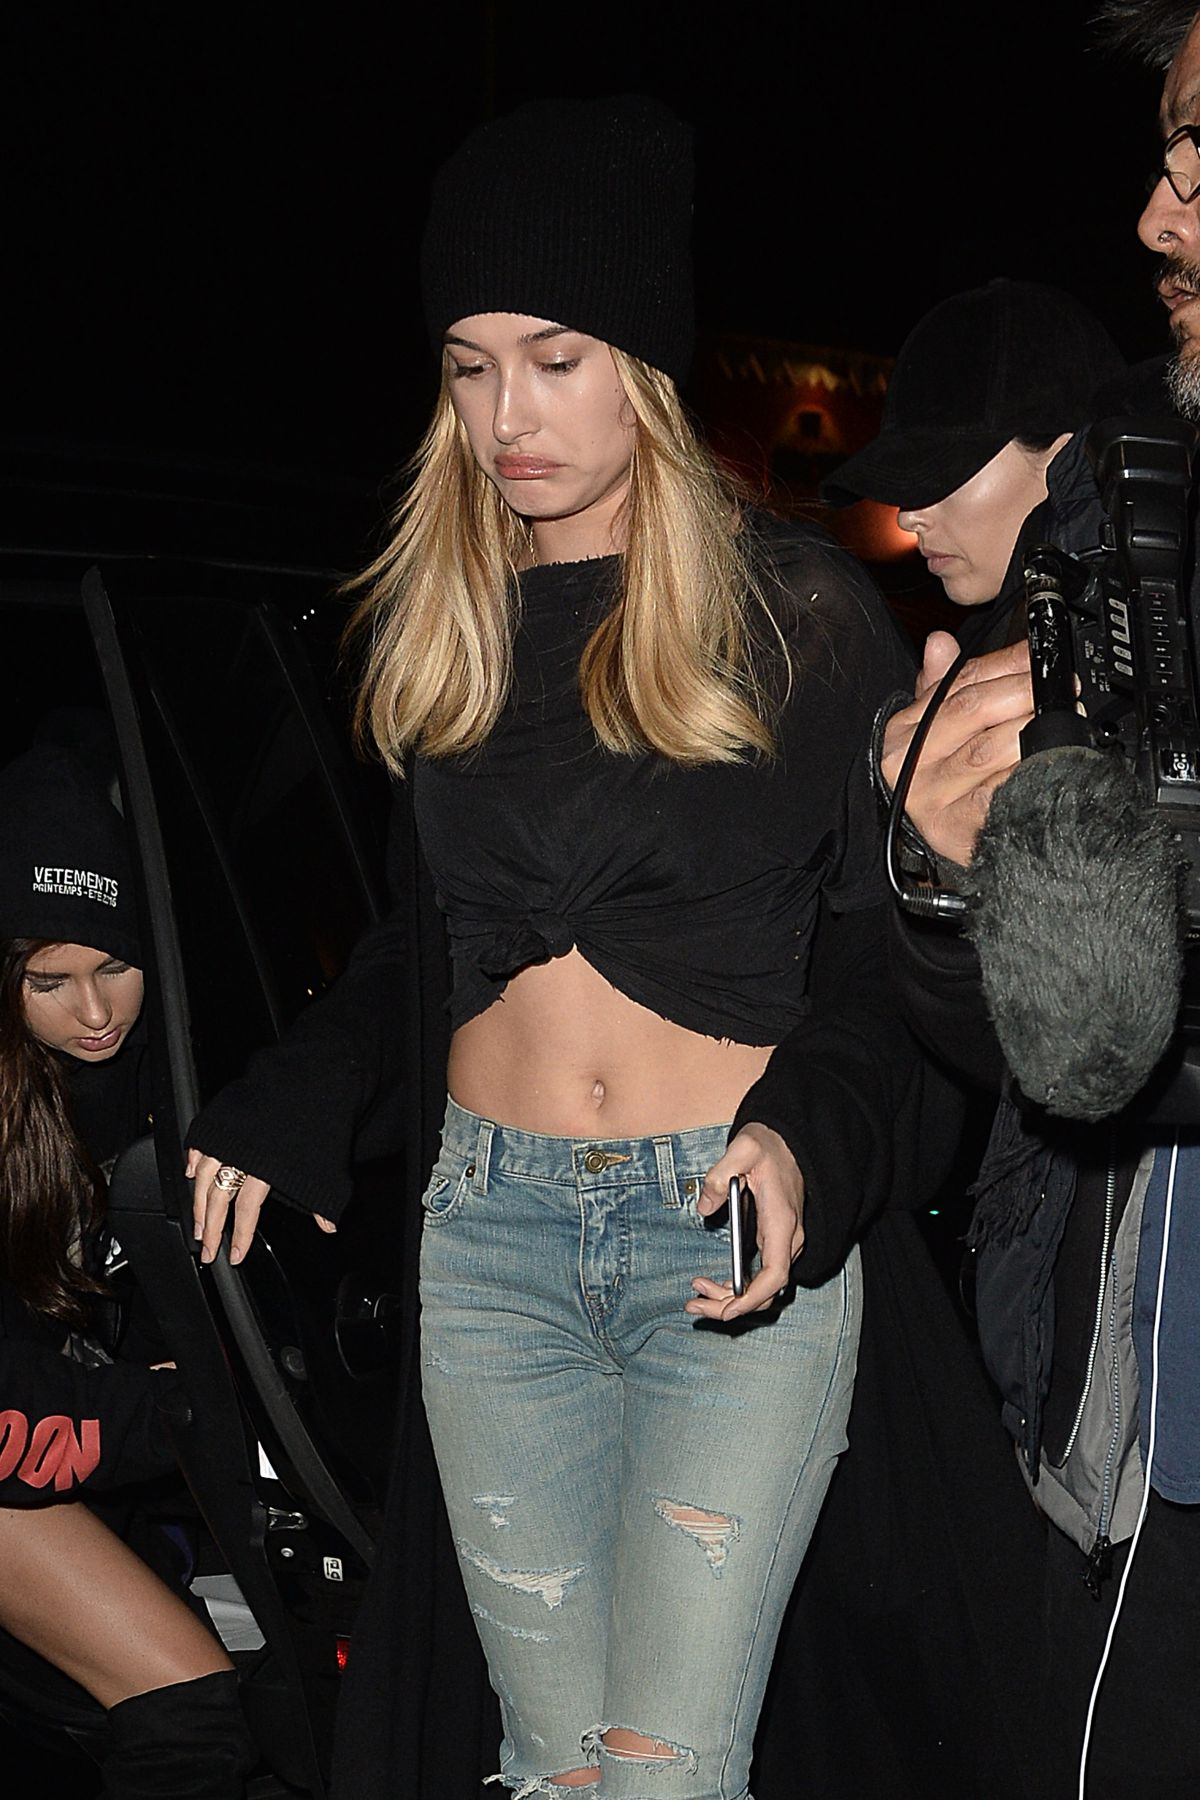 HAILEY BALDWIN at Nice Guy in Los Angeles 04/05/2016